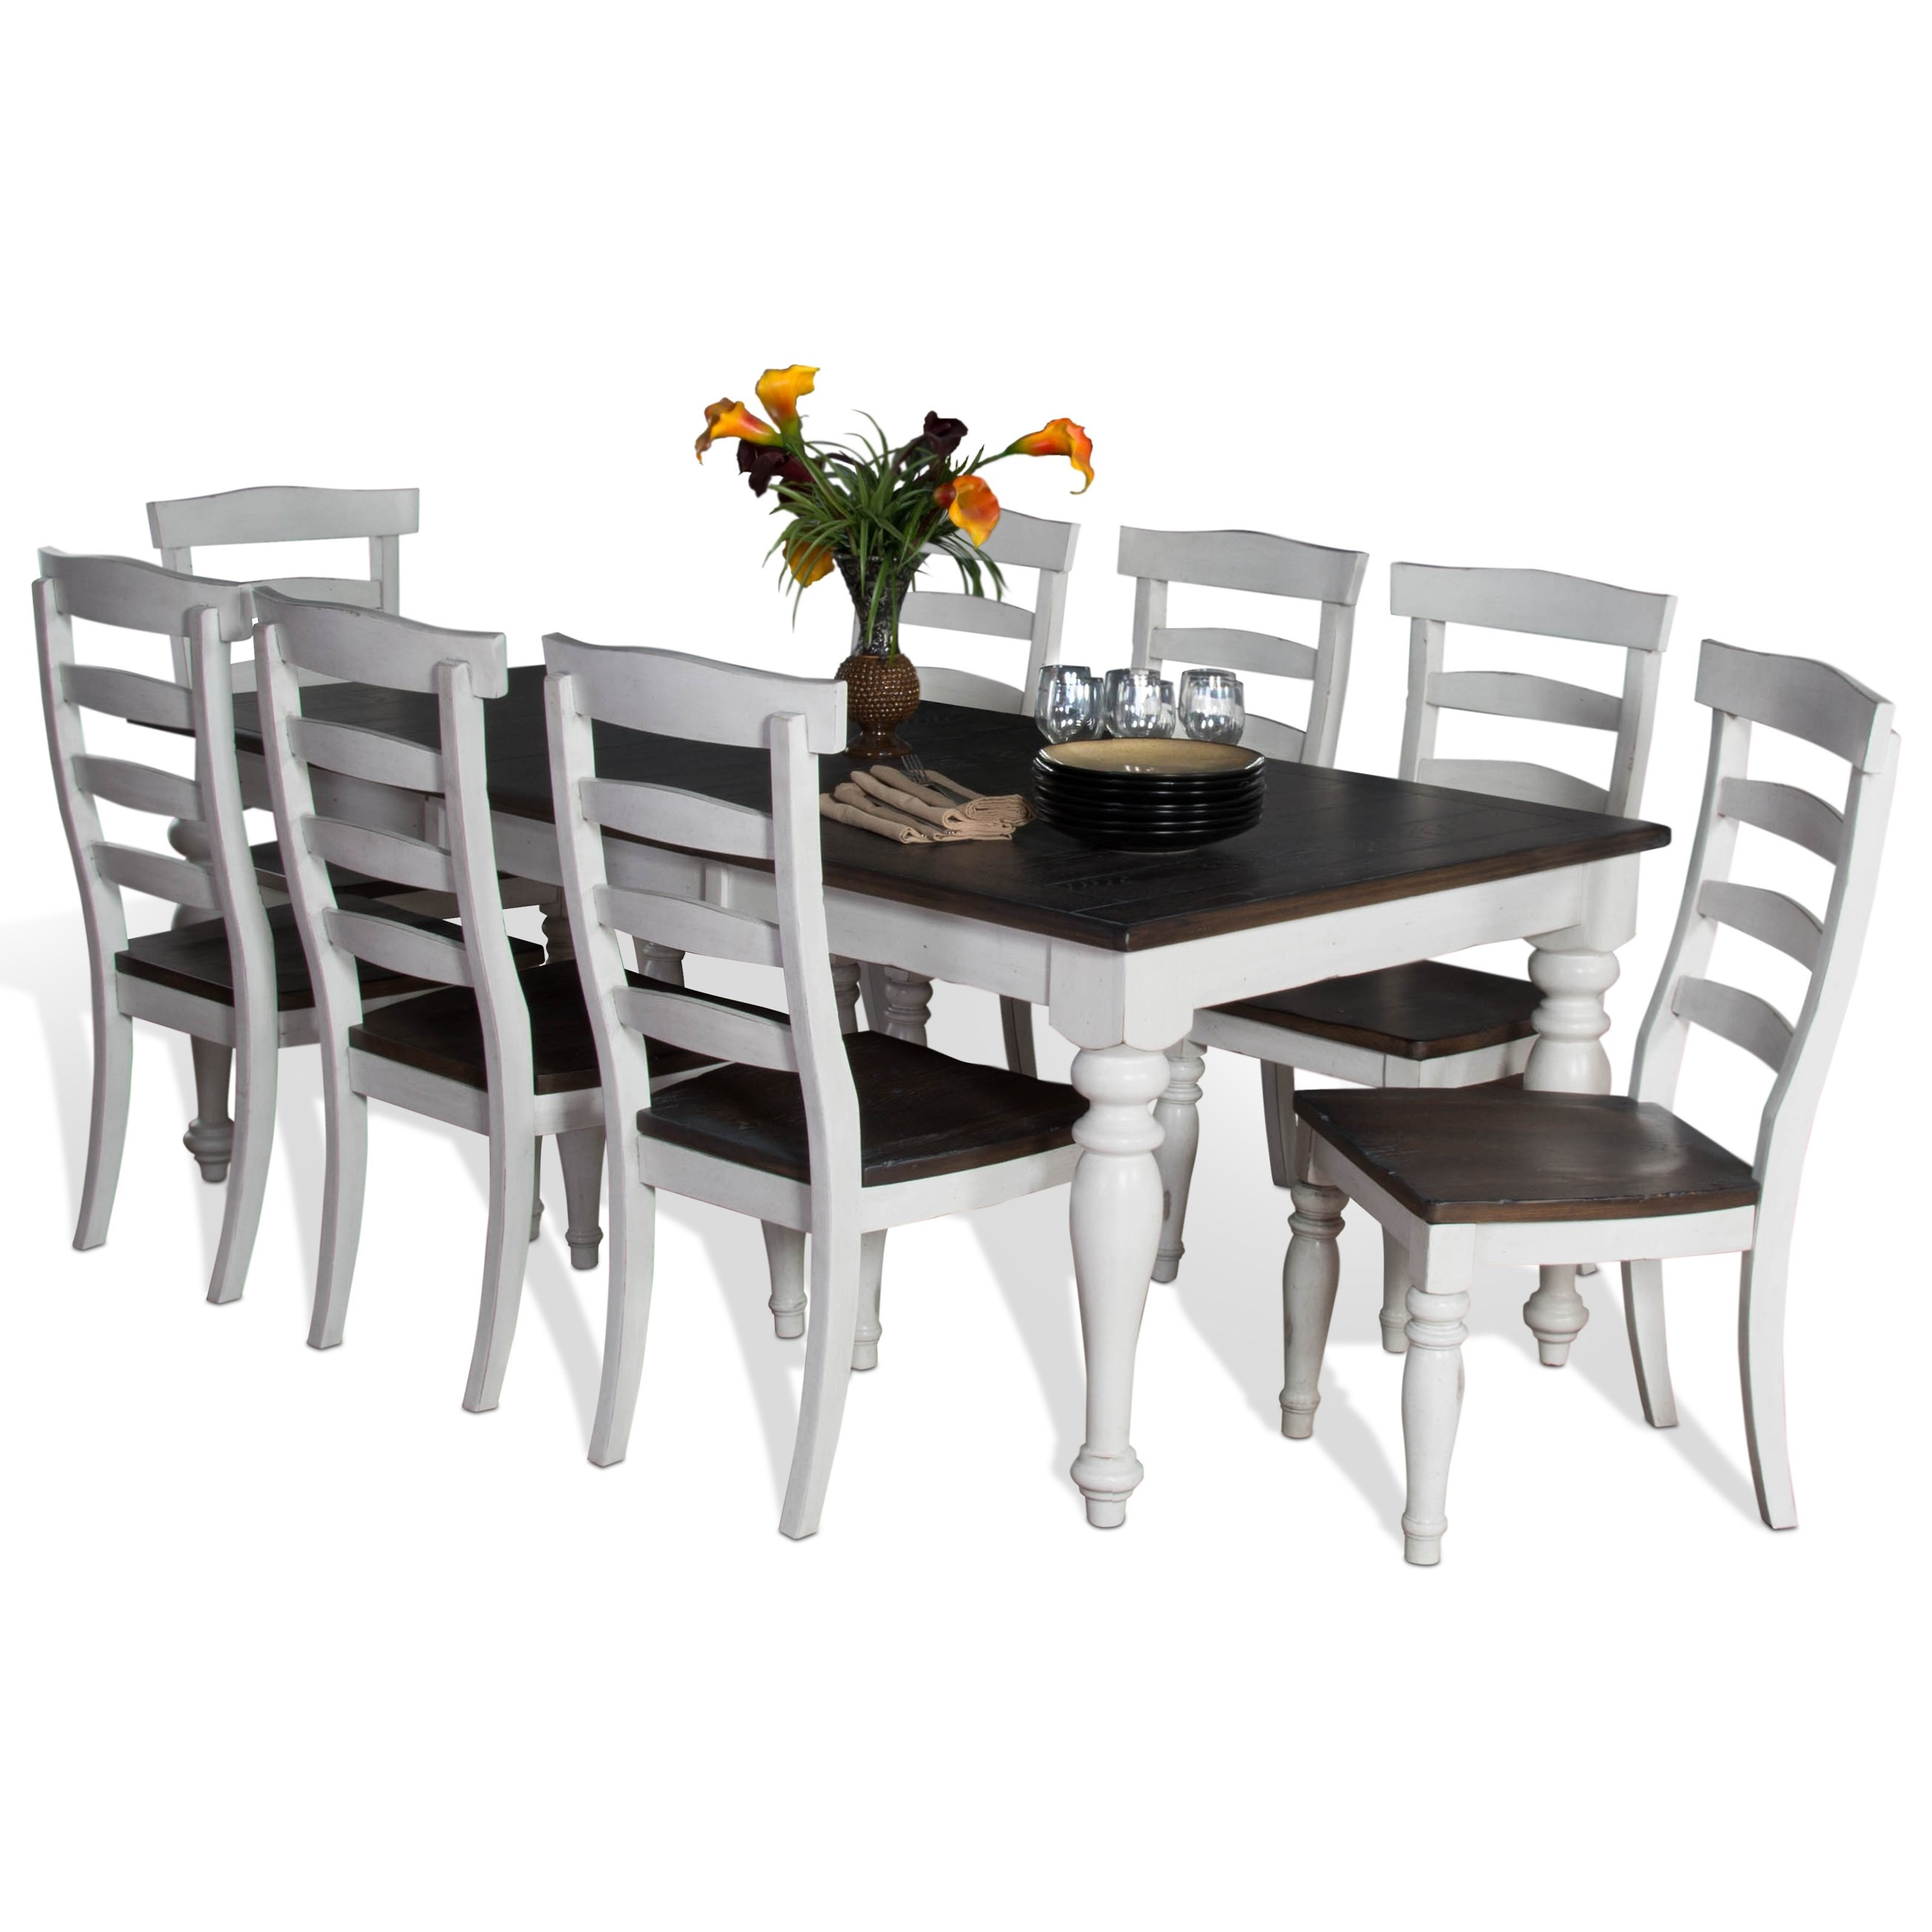 Sunny designs bourbon county 9 piece extension dining Dining set design ideas